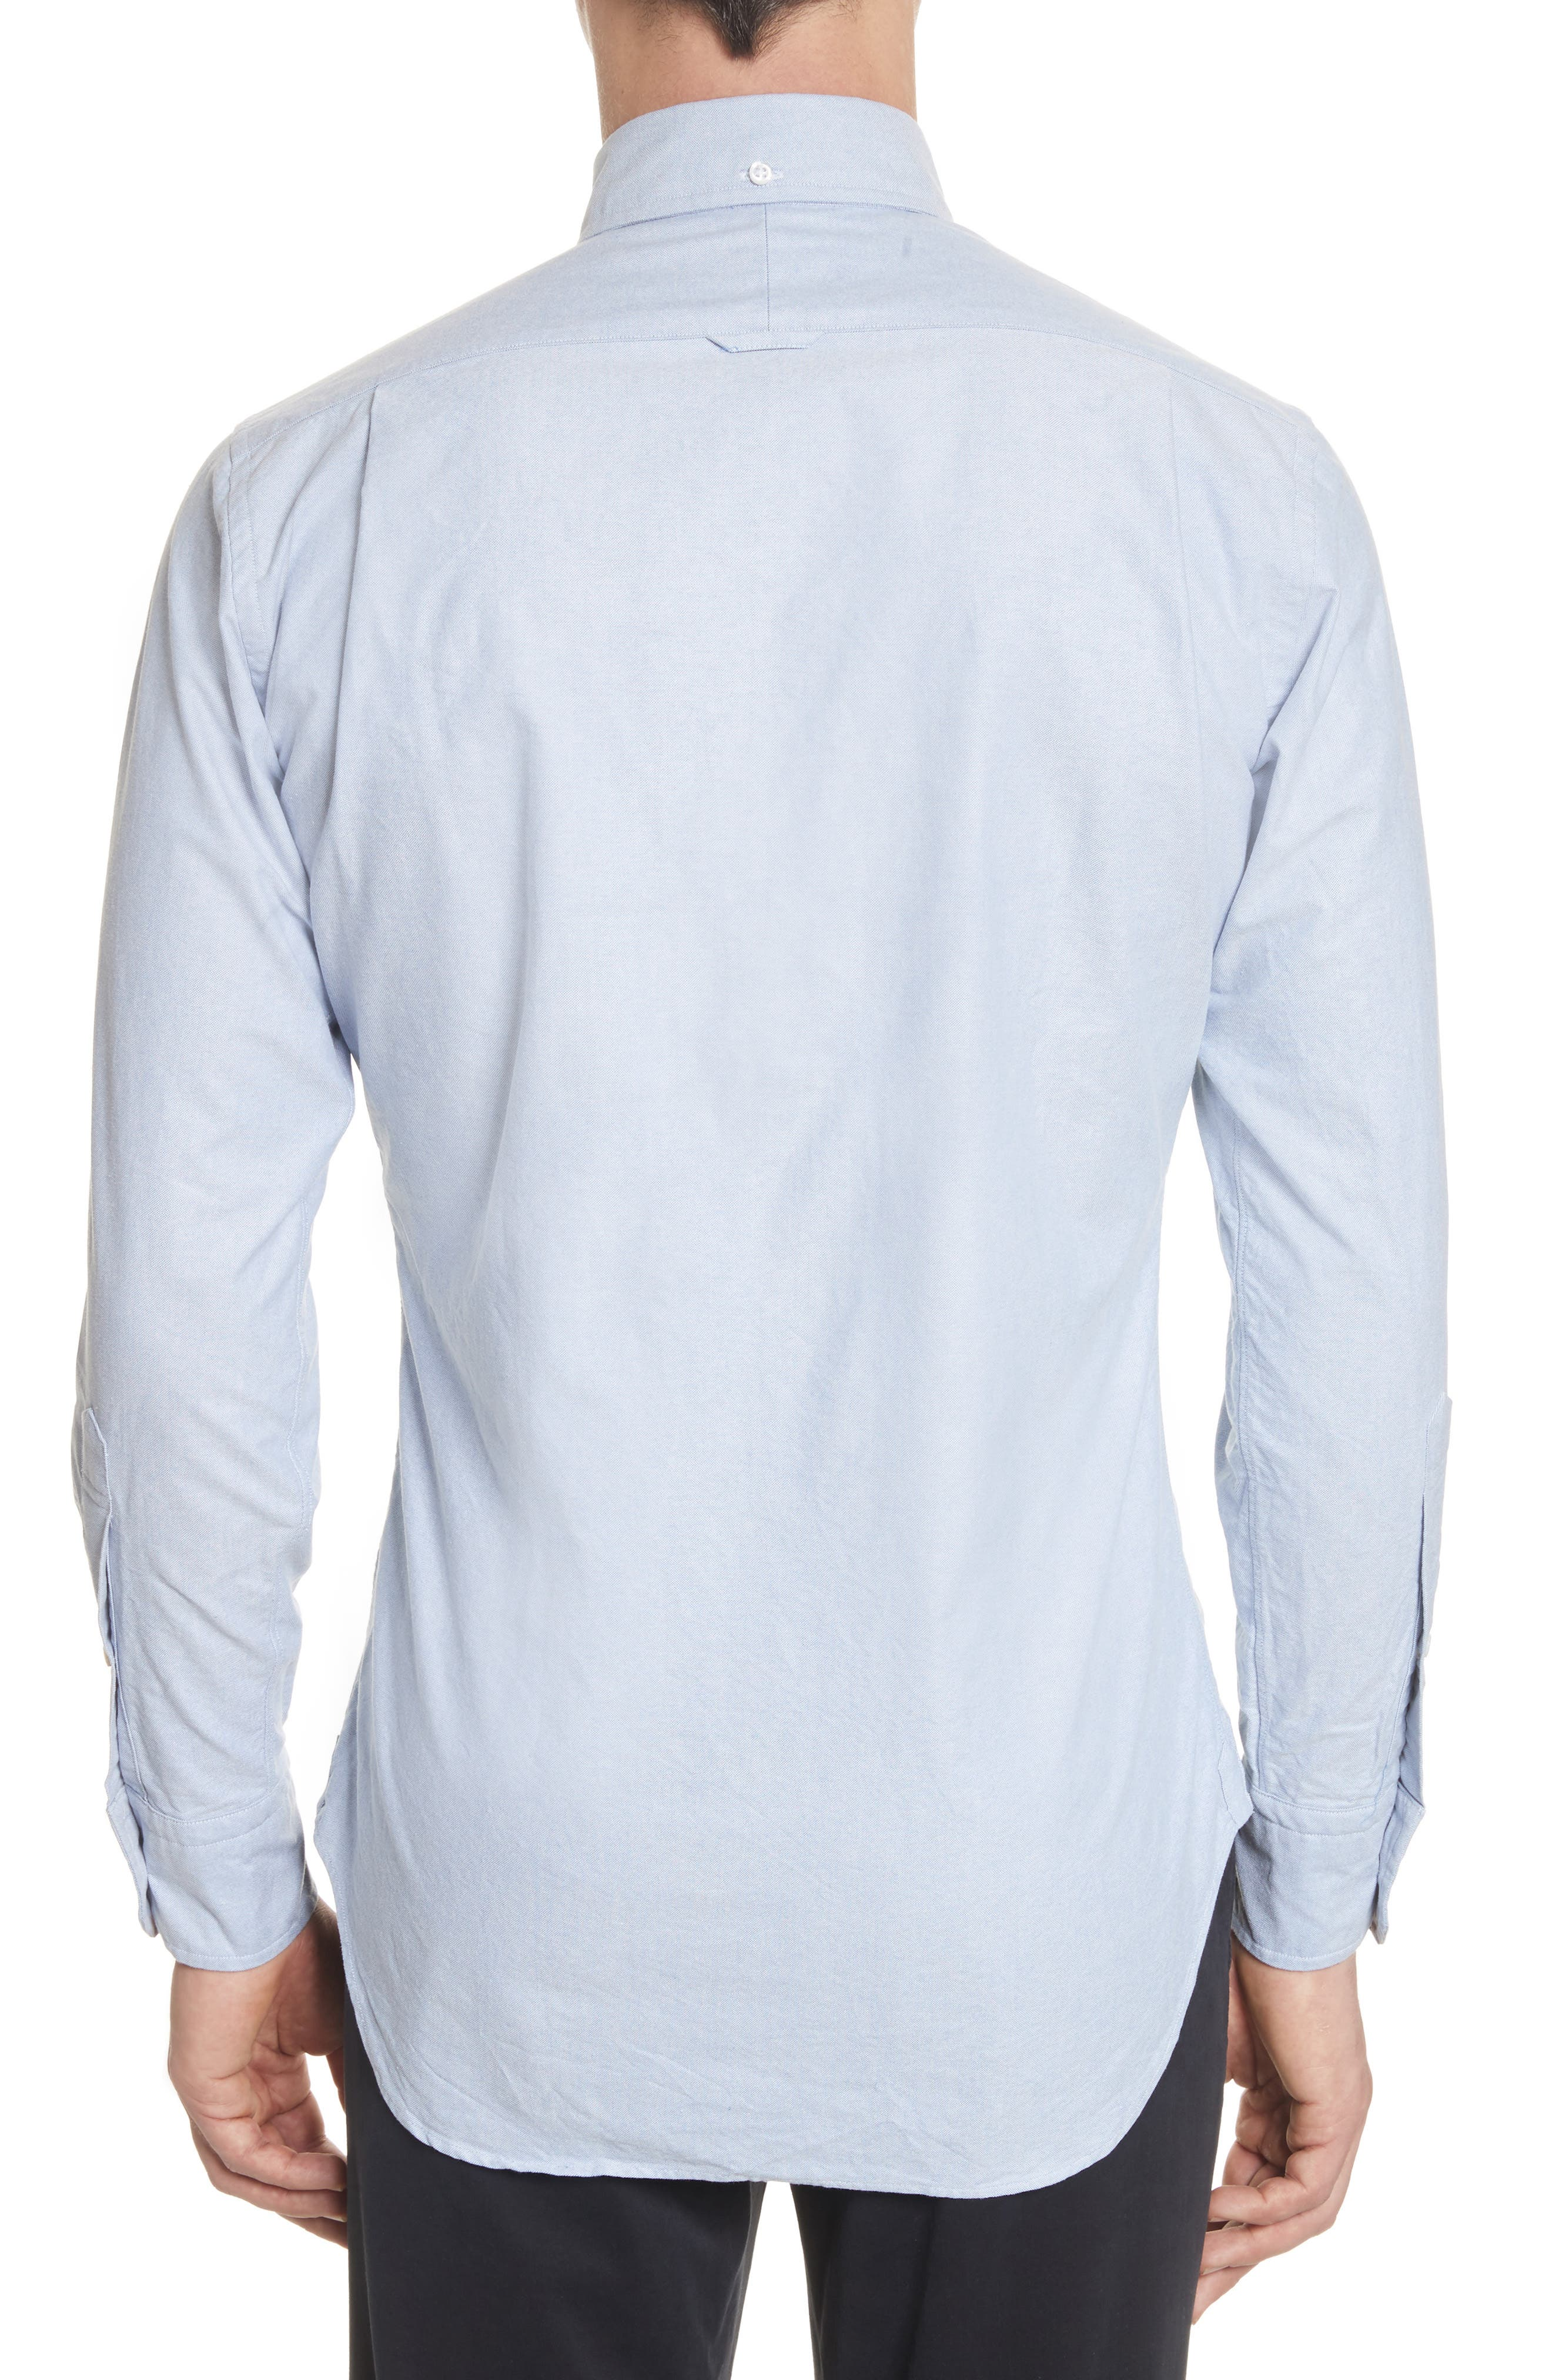 Extra Trim Fit Oxford Shirt with Grosgrain Trim,                             Alternate thumbnail 3, color,                             Light Blue